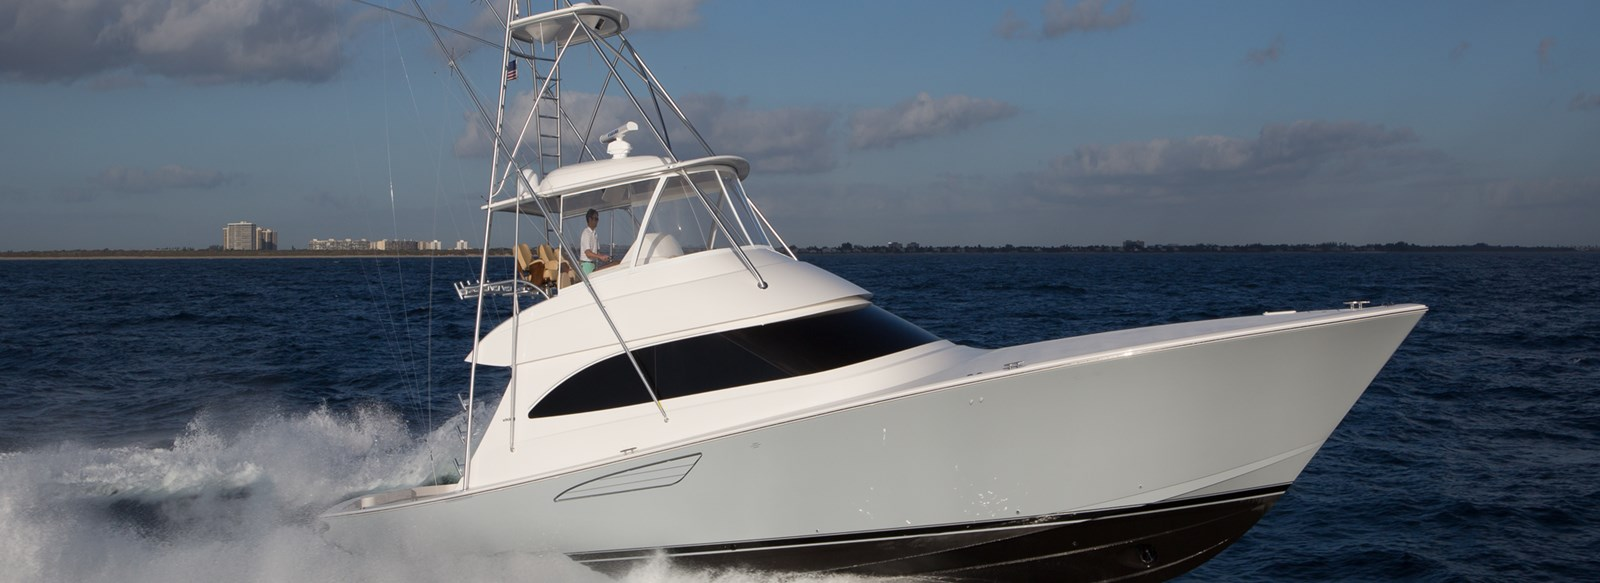 New Viking 62 Convertible Yachts For Sale